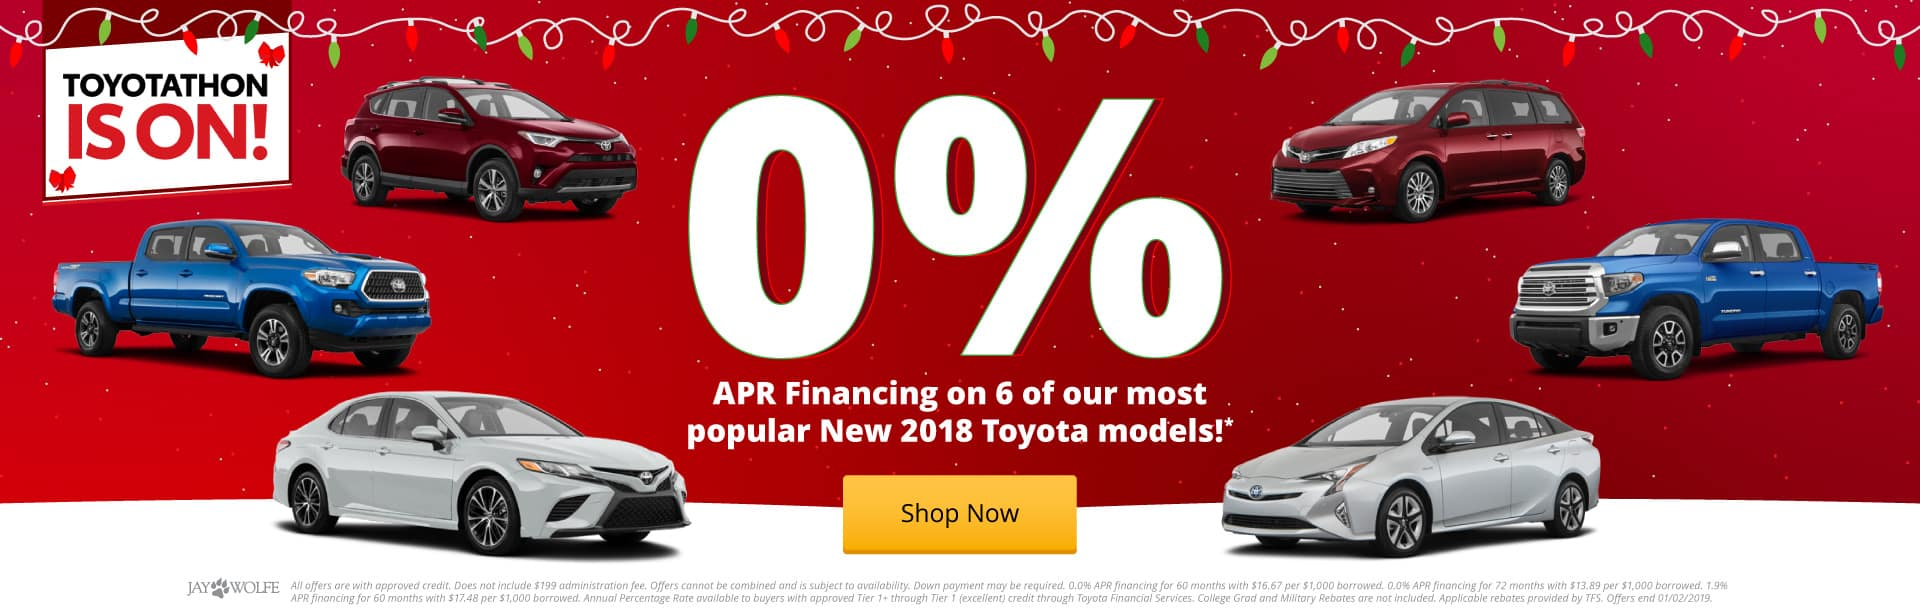 0.0% APR Financing on 6 of our most popular Toyota models!*